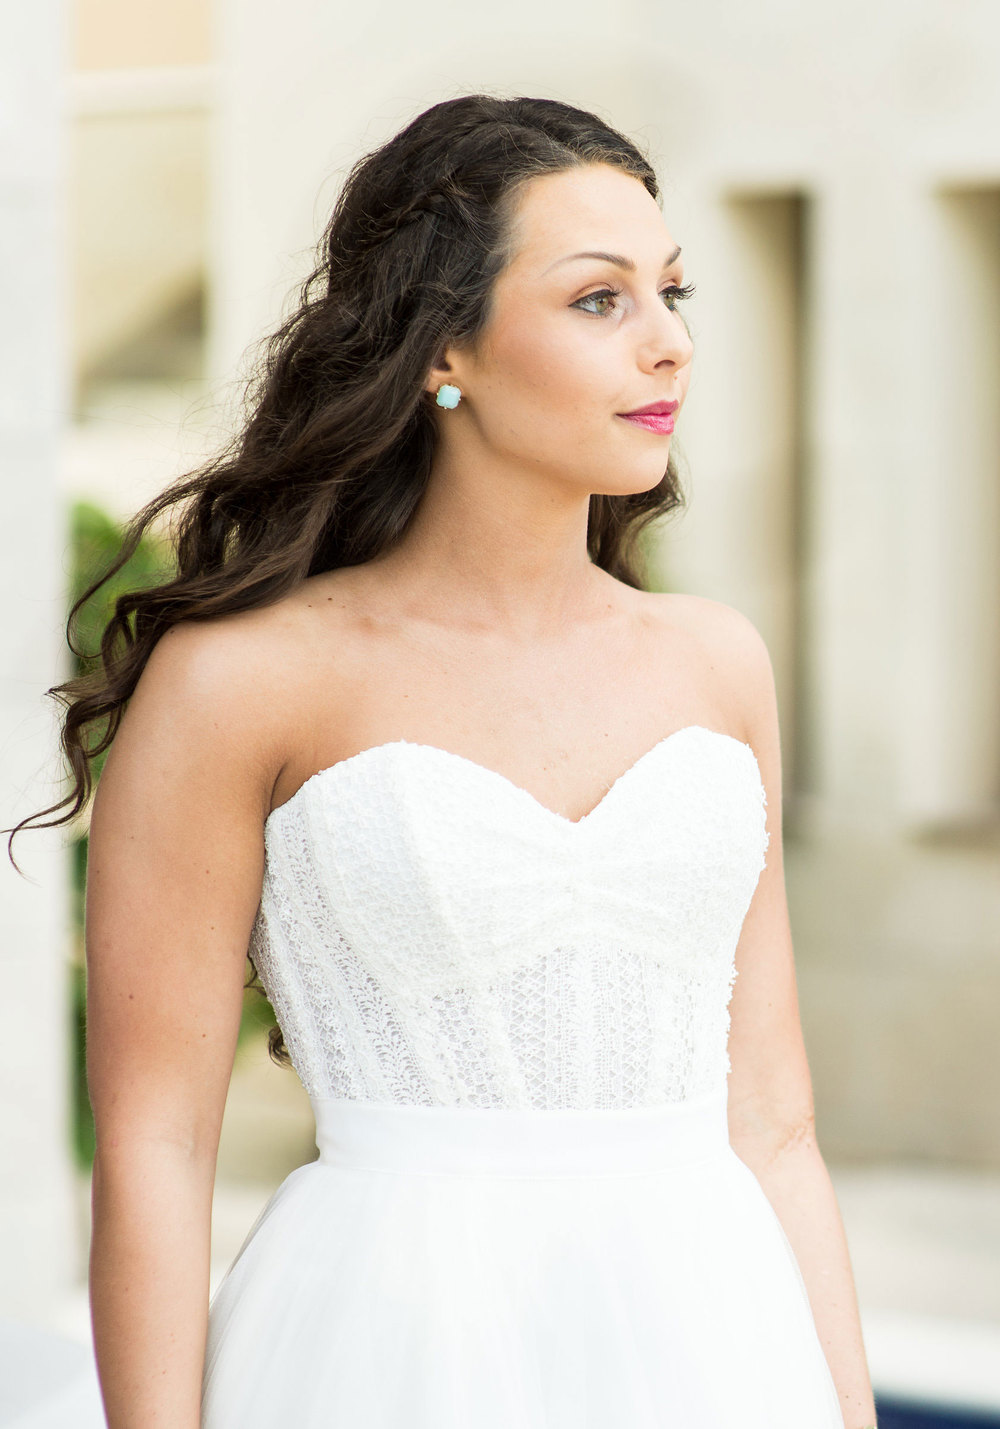 Bride in bridal separates, corset top with Watters Ashan Skirt, Hair Down with small braids.